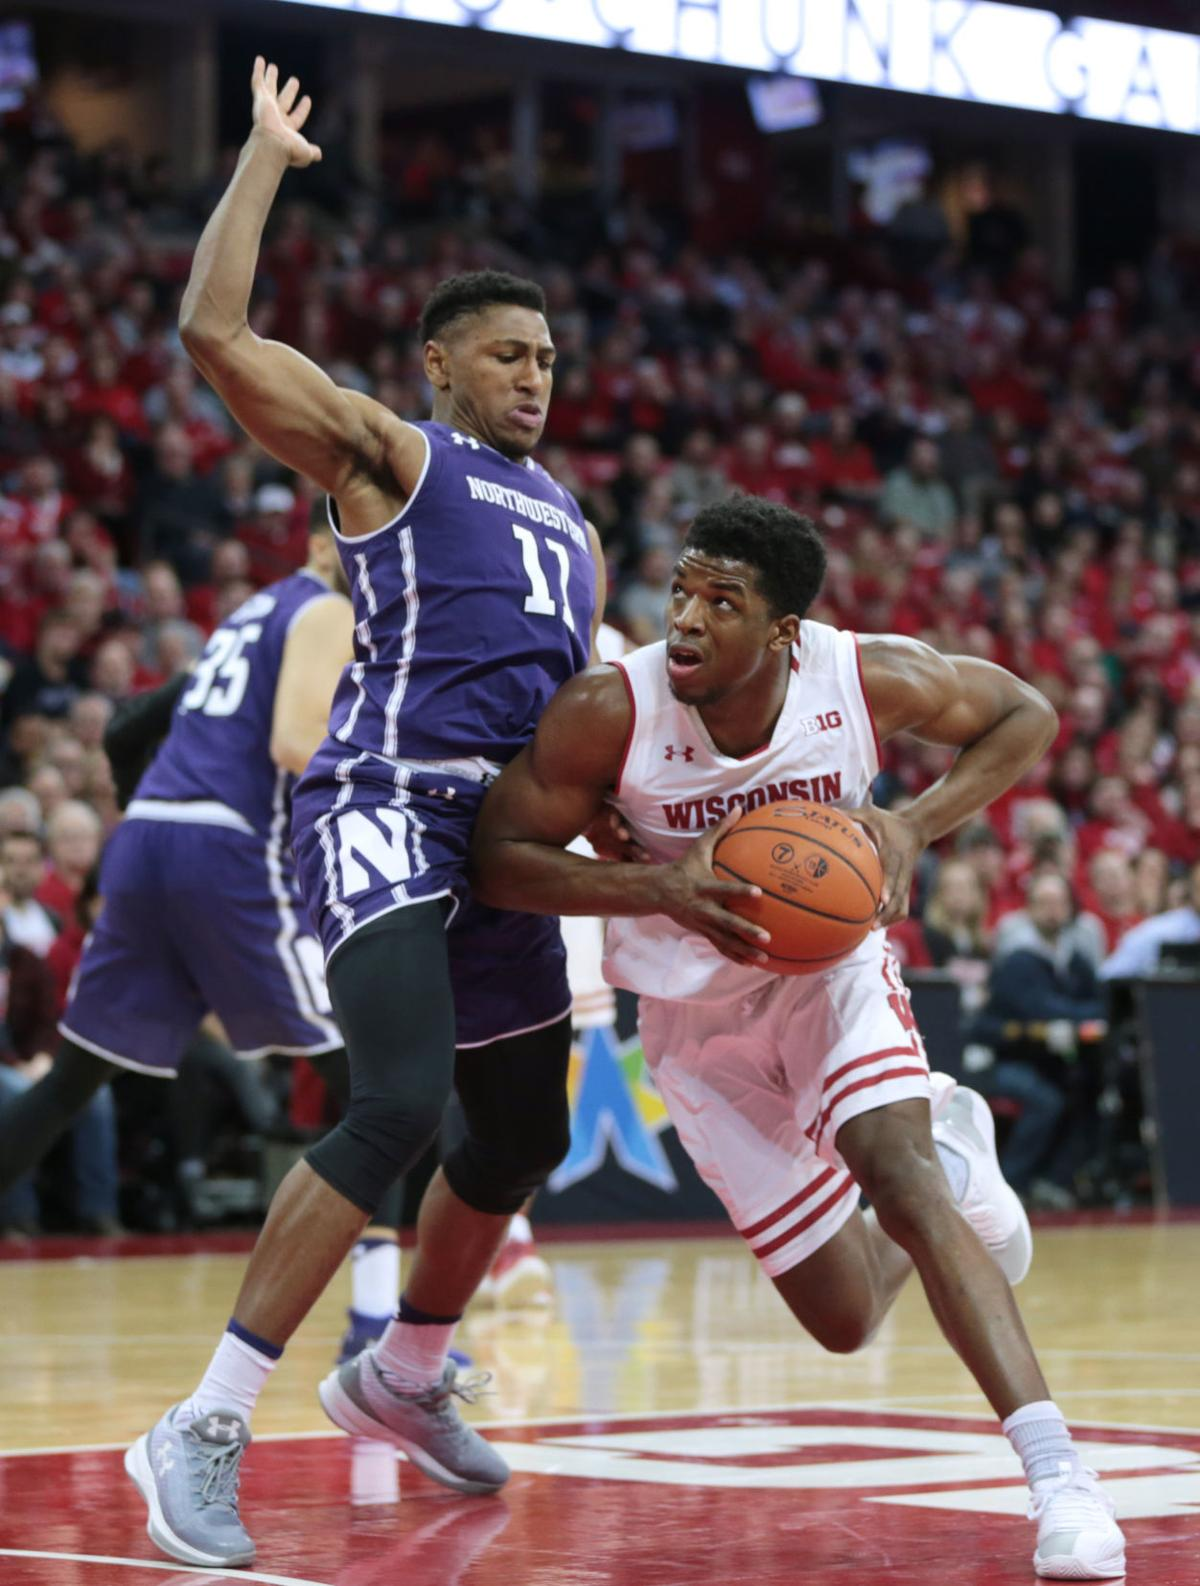 Tom Oates: Greg Gard's young Badgers team is struggling ...